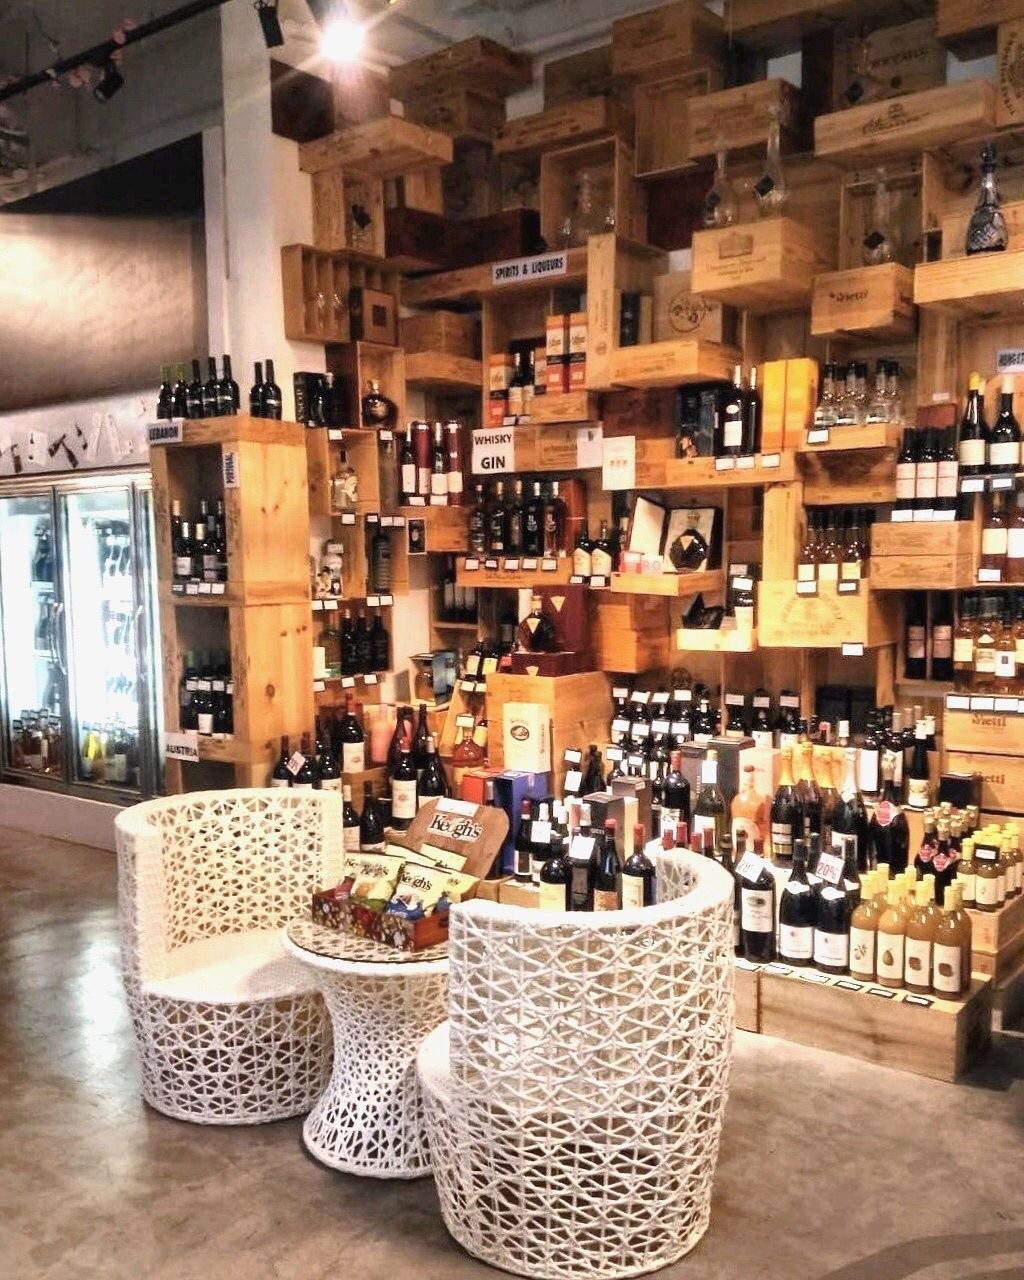 Straits Wine Singapore offers a wide selection of wines